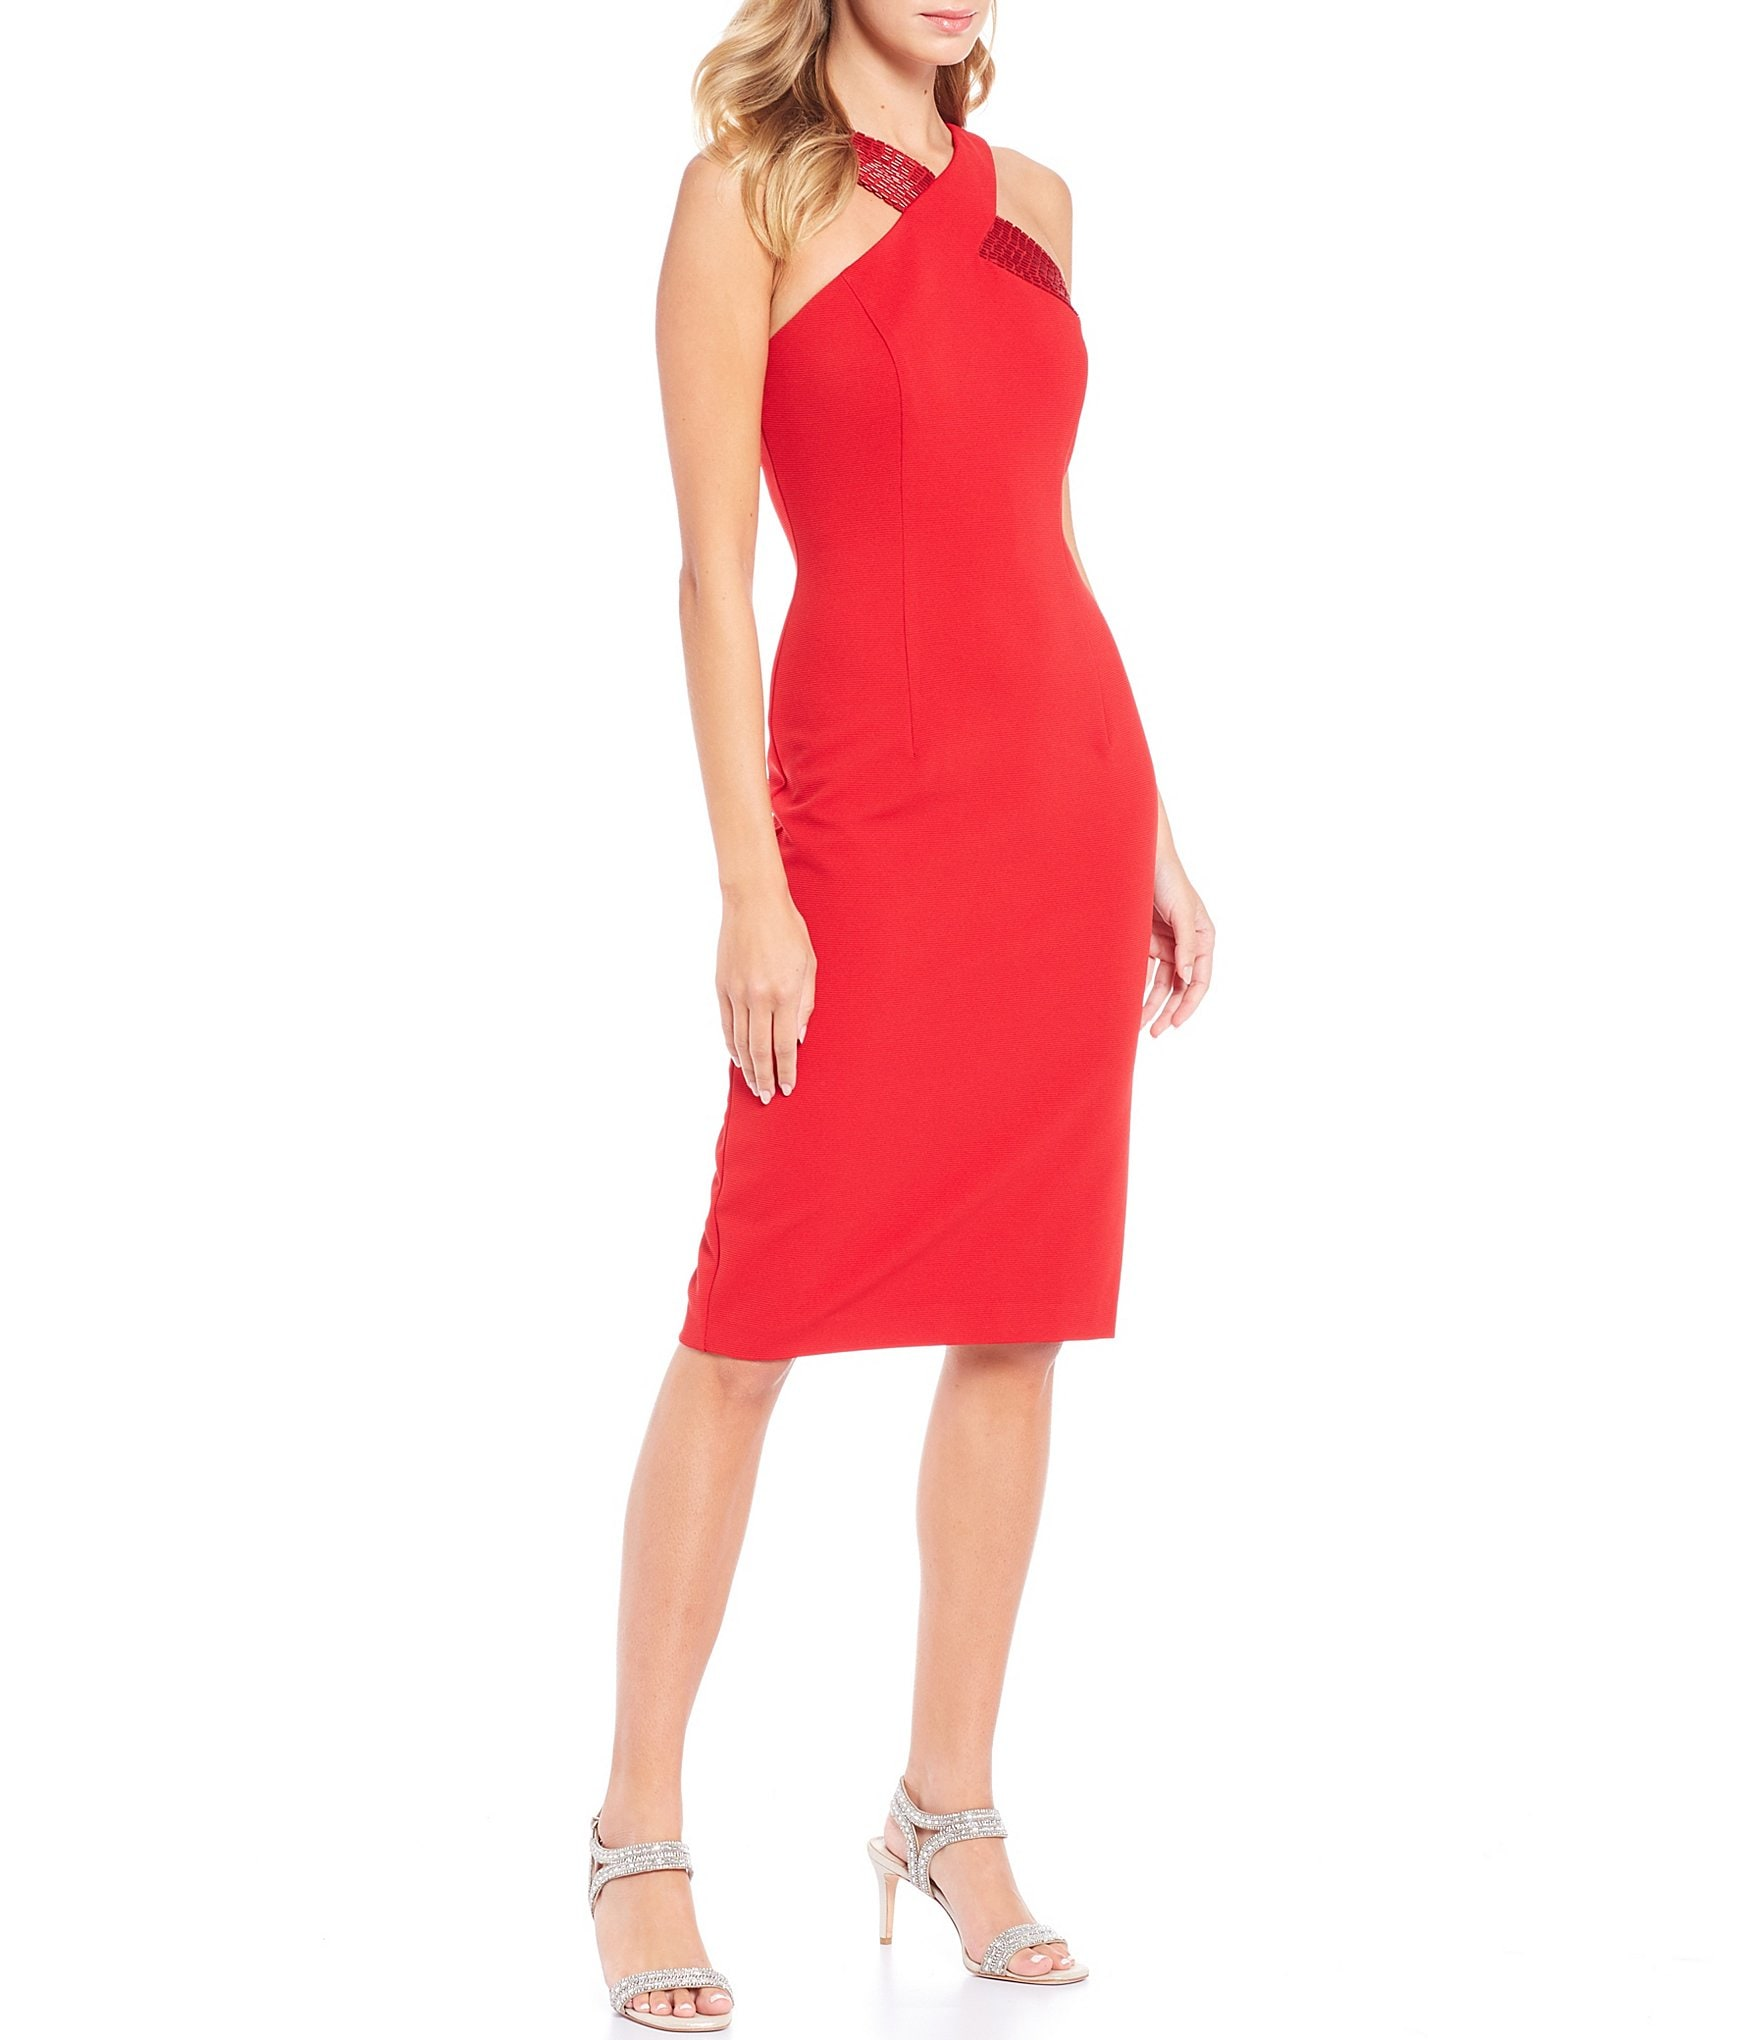 Undergarments adrianna papell sequin bodycon dress quartz knitting concealed carry